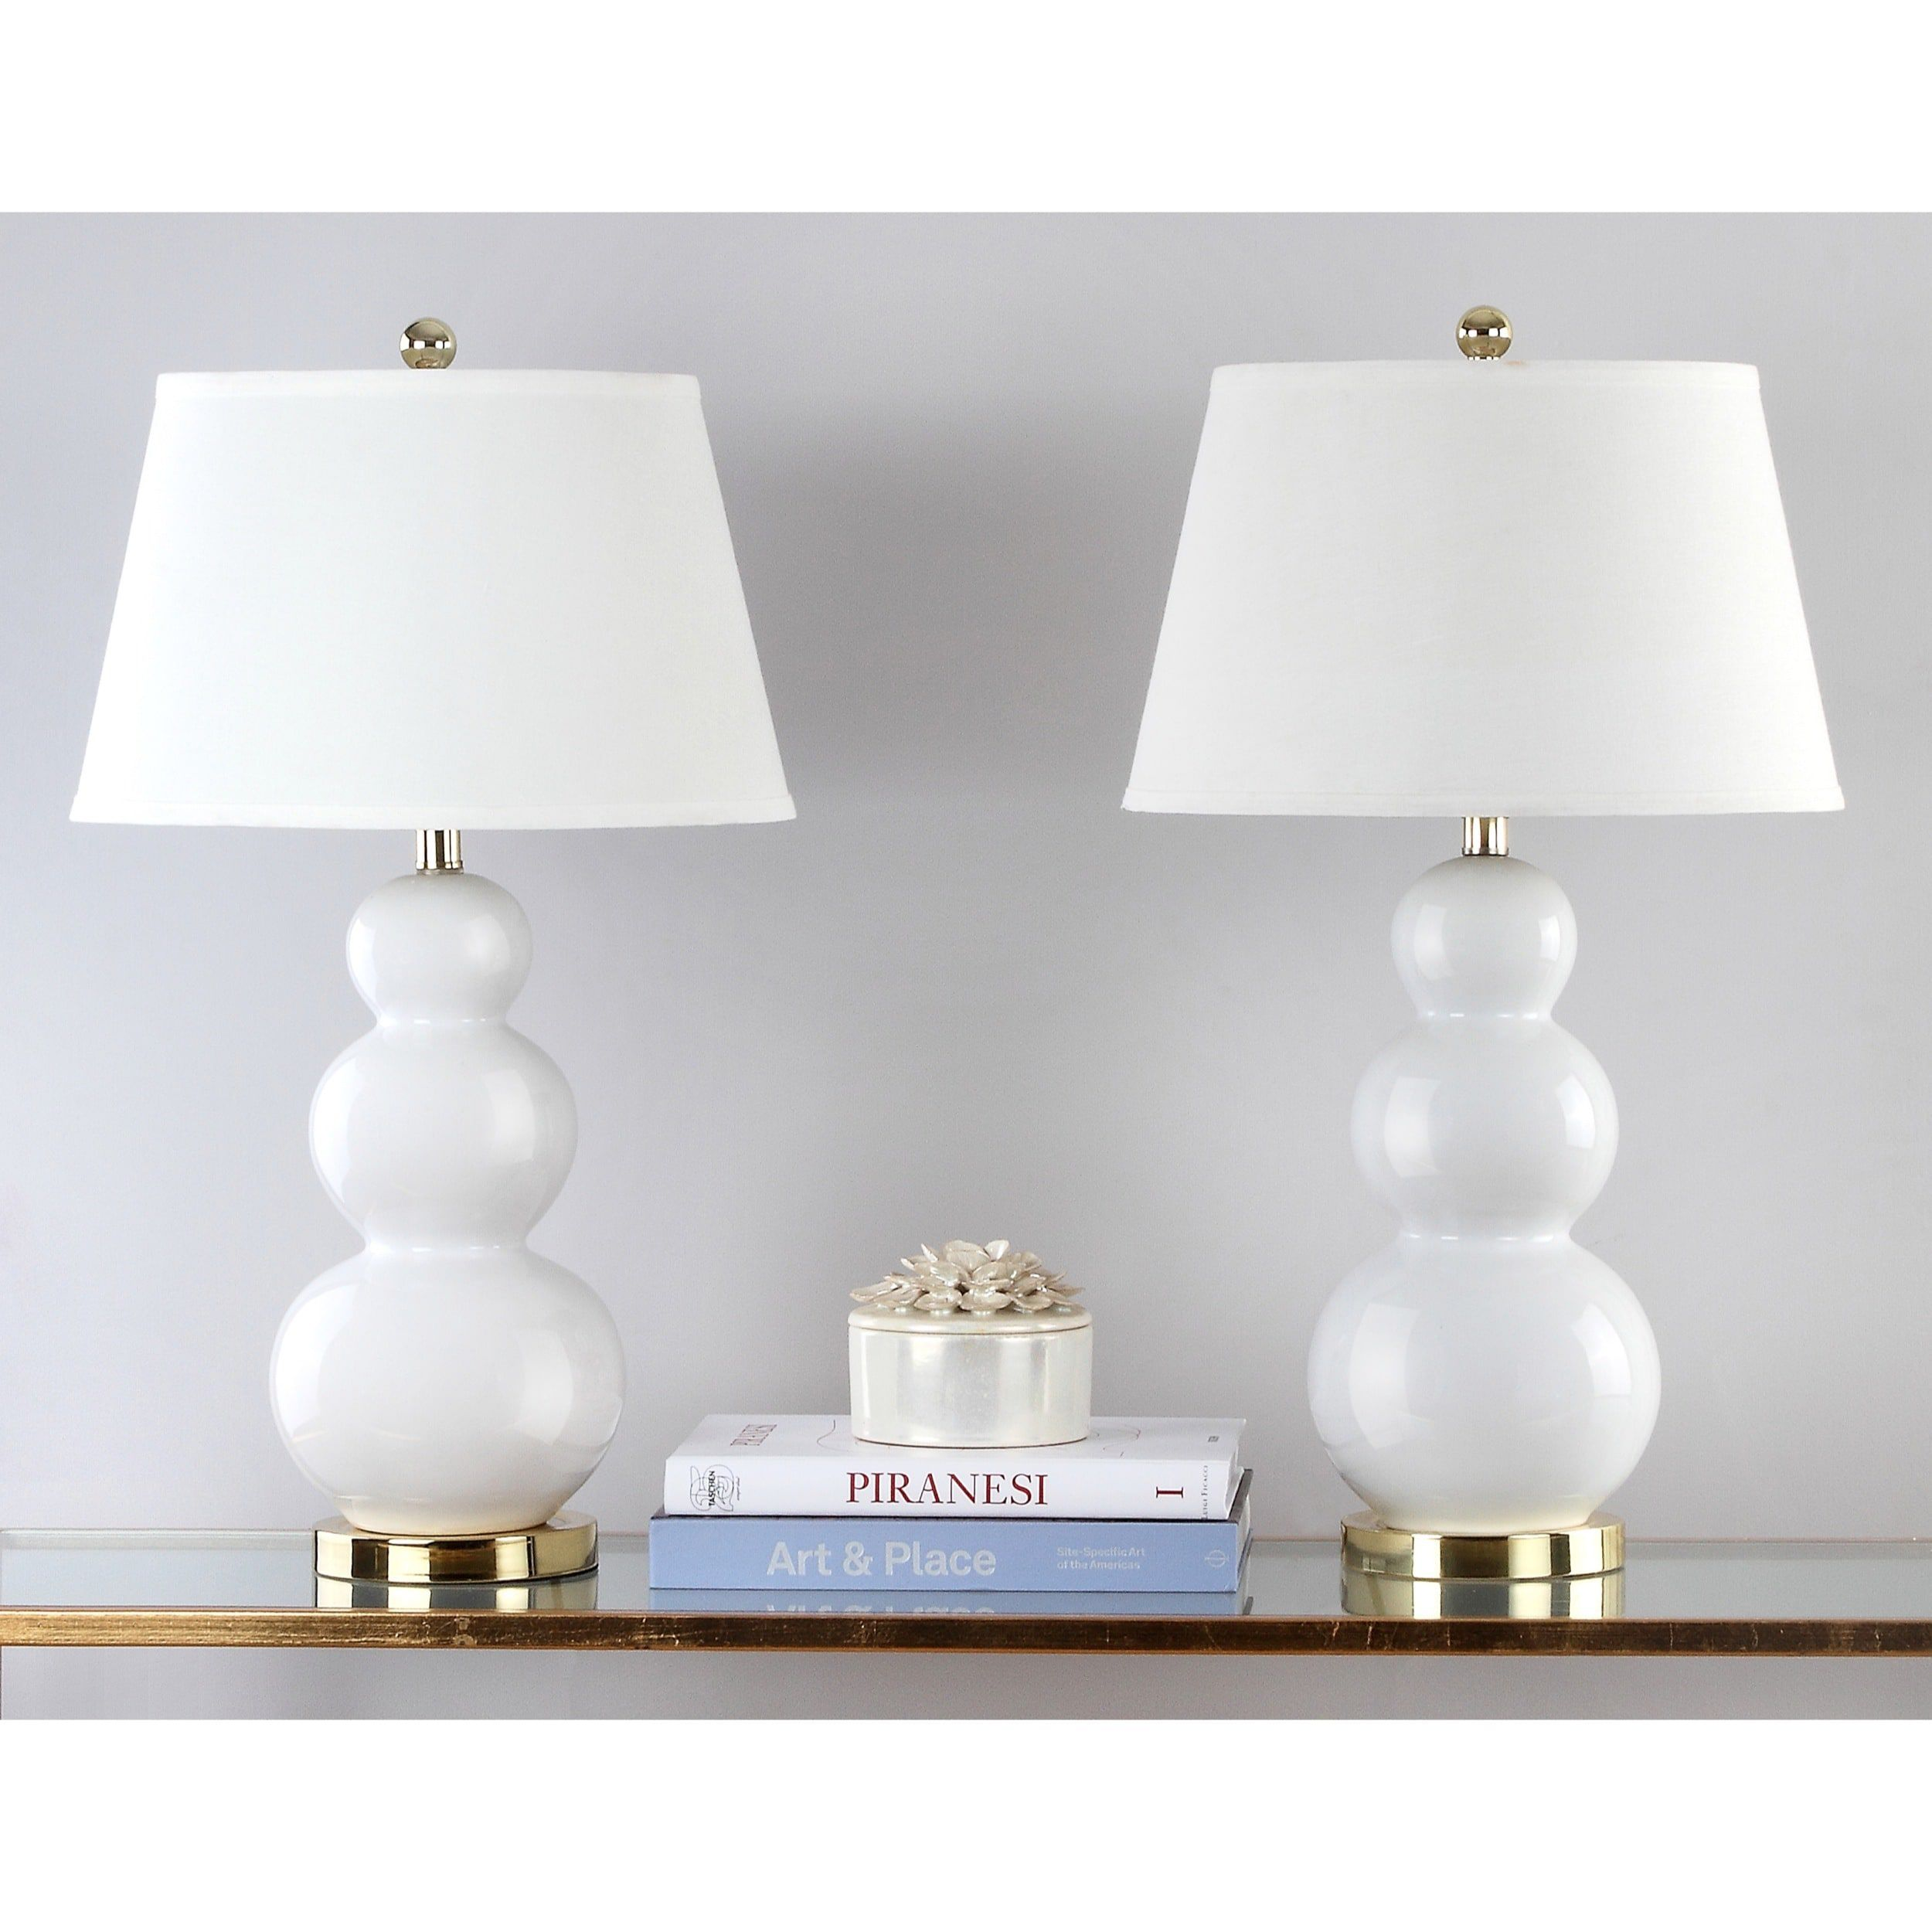 Best Top Table Lamps Under 60 2020 @house2homegoods.net